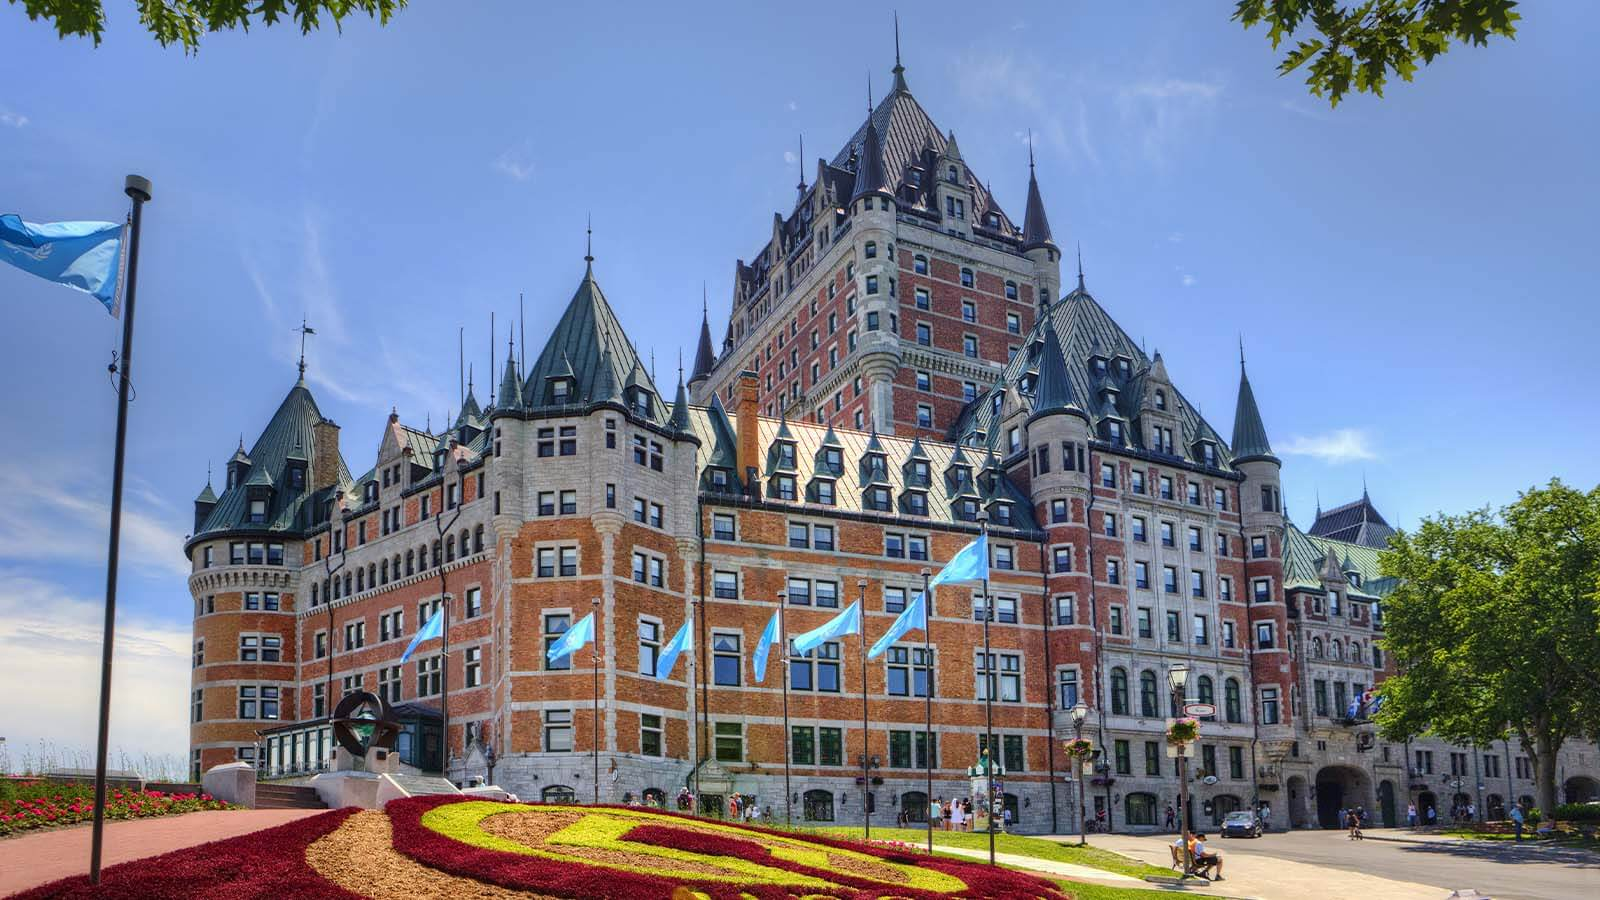 Daytime exterior of the Fairmont Le Château Frontenac in Quebec, Canada.